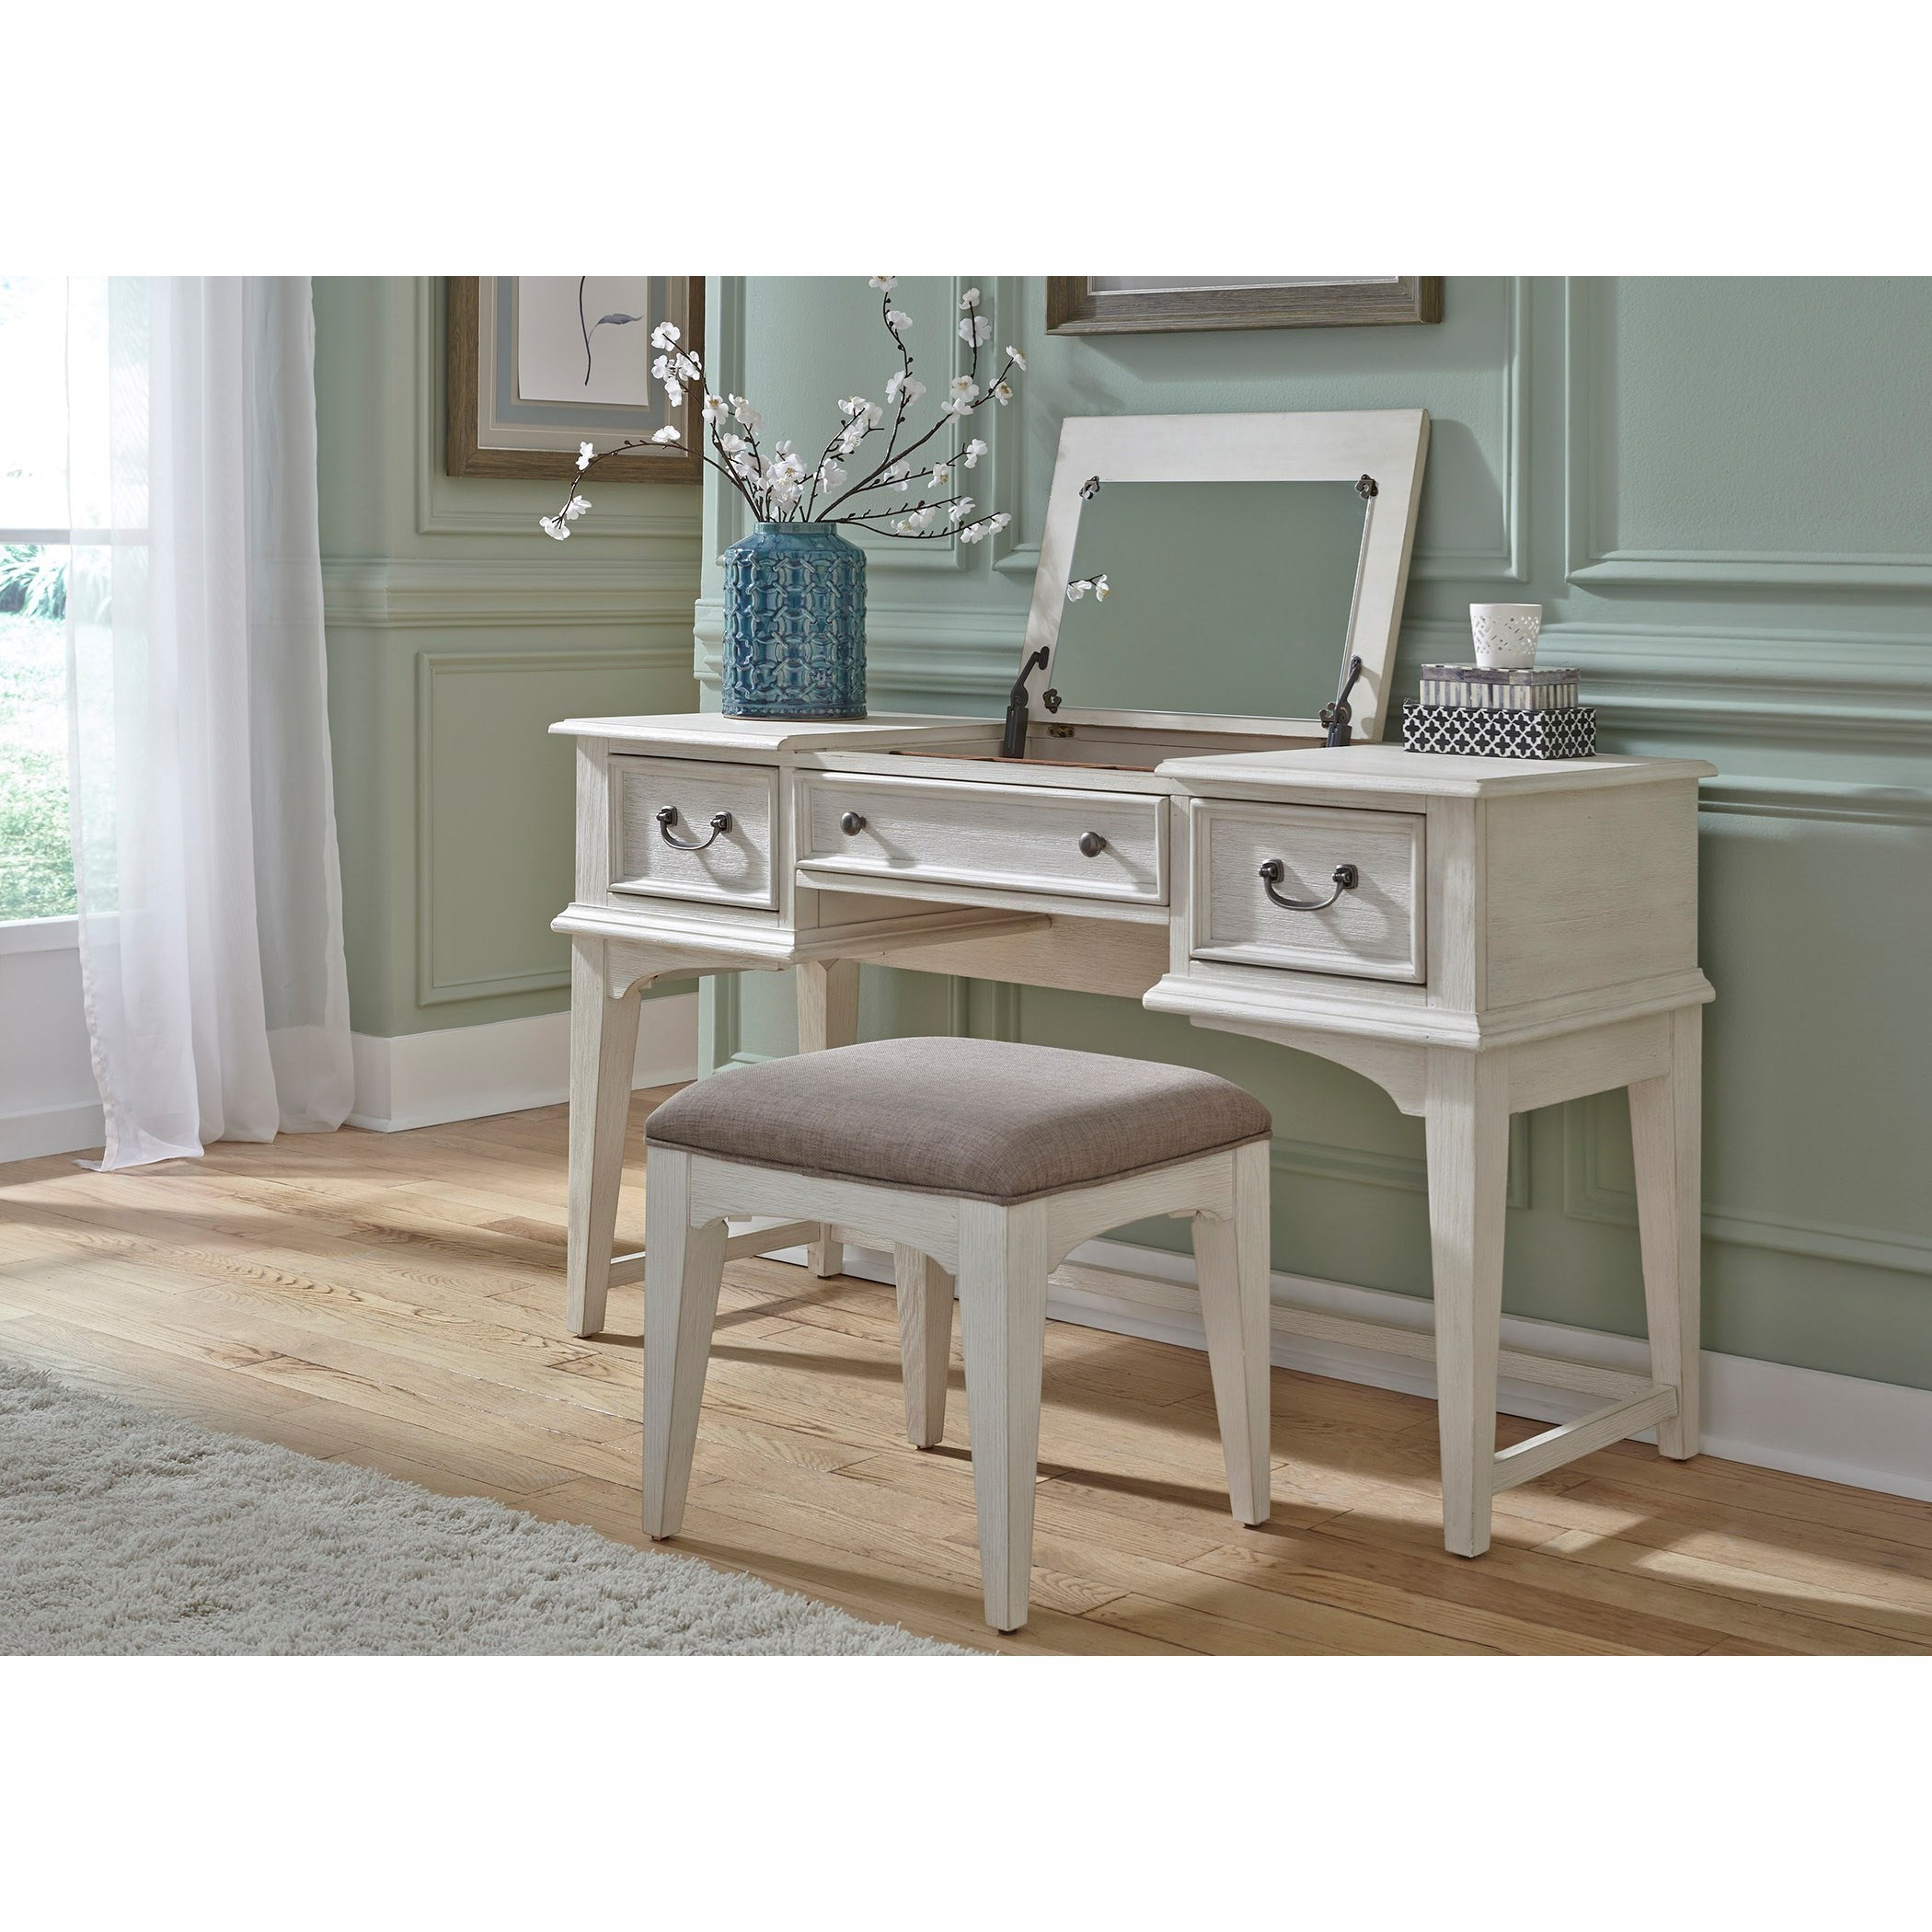 Transitional Vanity with Lift Top Jewelry Storage and Bench